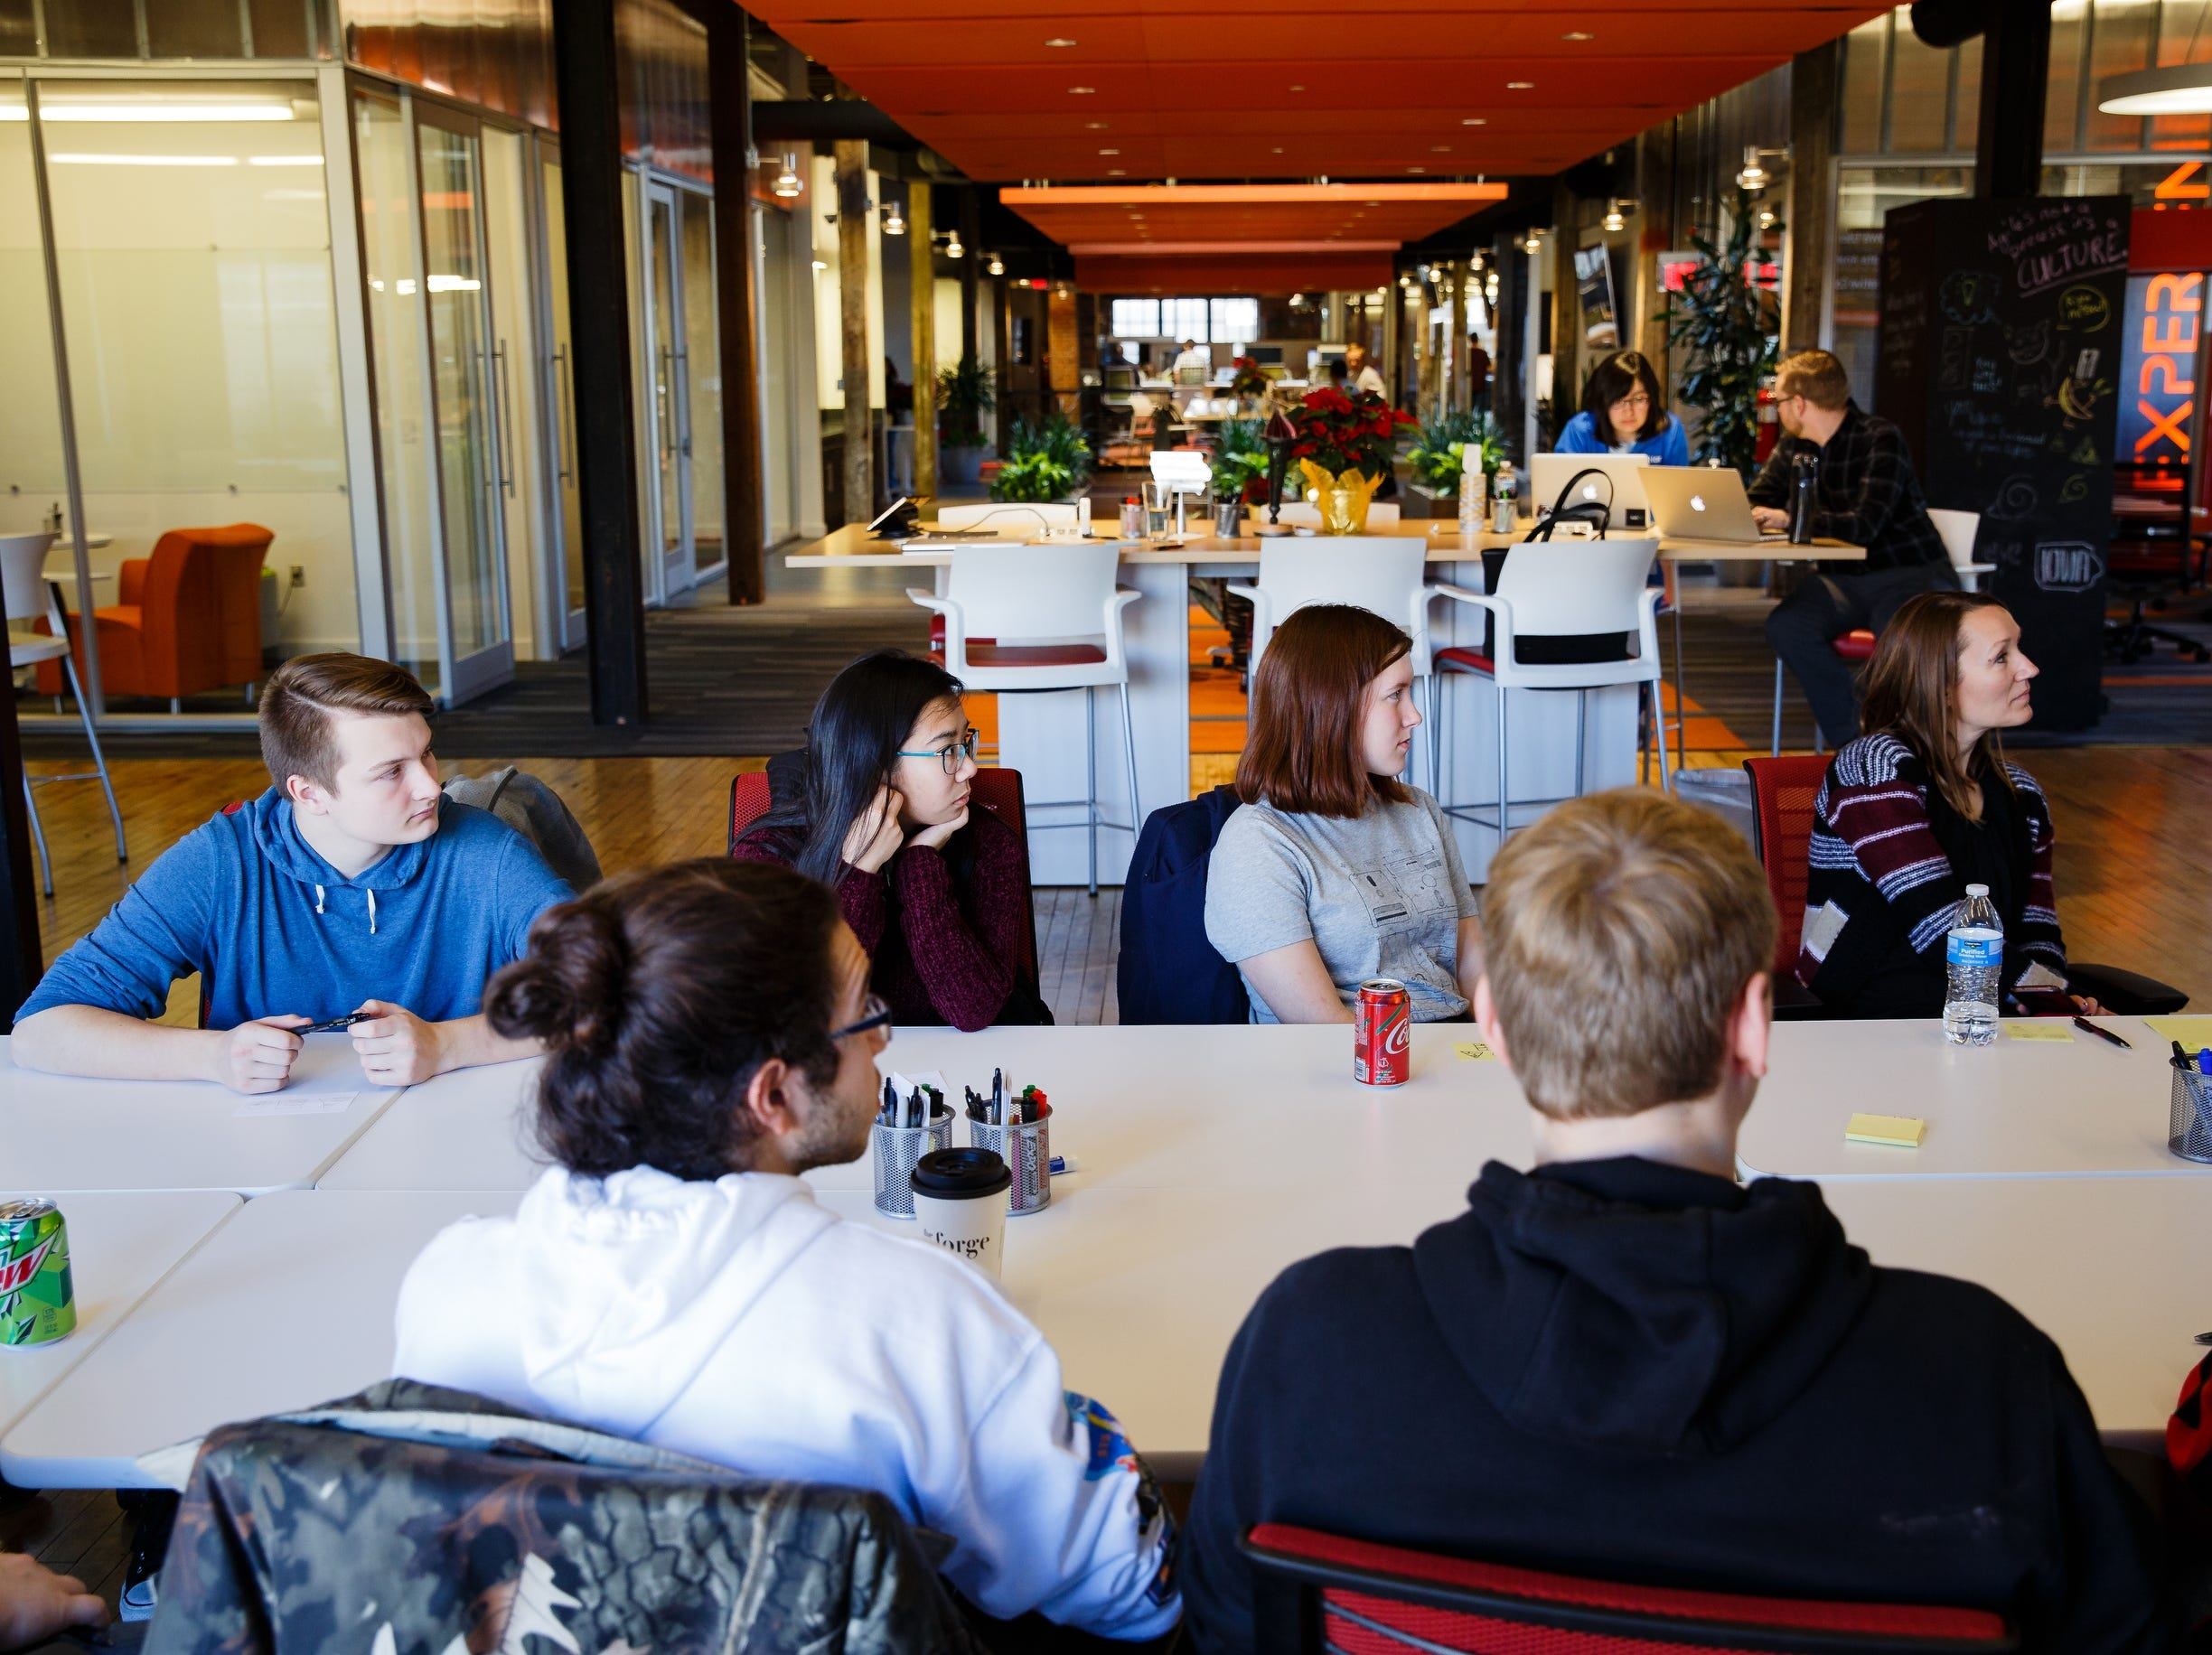 Students from Jefferson listen to Abs King, an Experience Architect at Pillar during a visit Pillar Technologies' Forge on Thursday, Dec. 6, 2018, in Des Moines. The students were learning about tech jobs at the company who is bring a Forge to Jefferson.